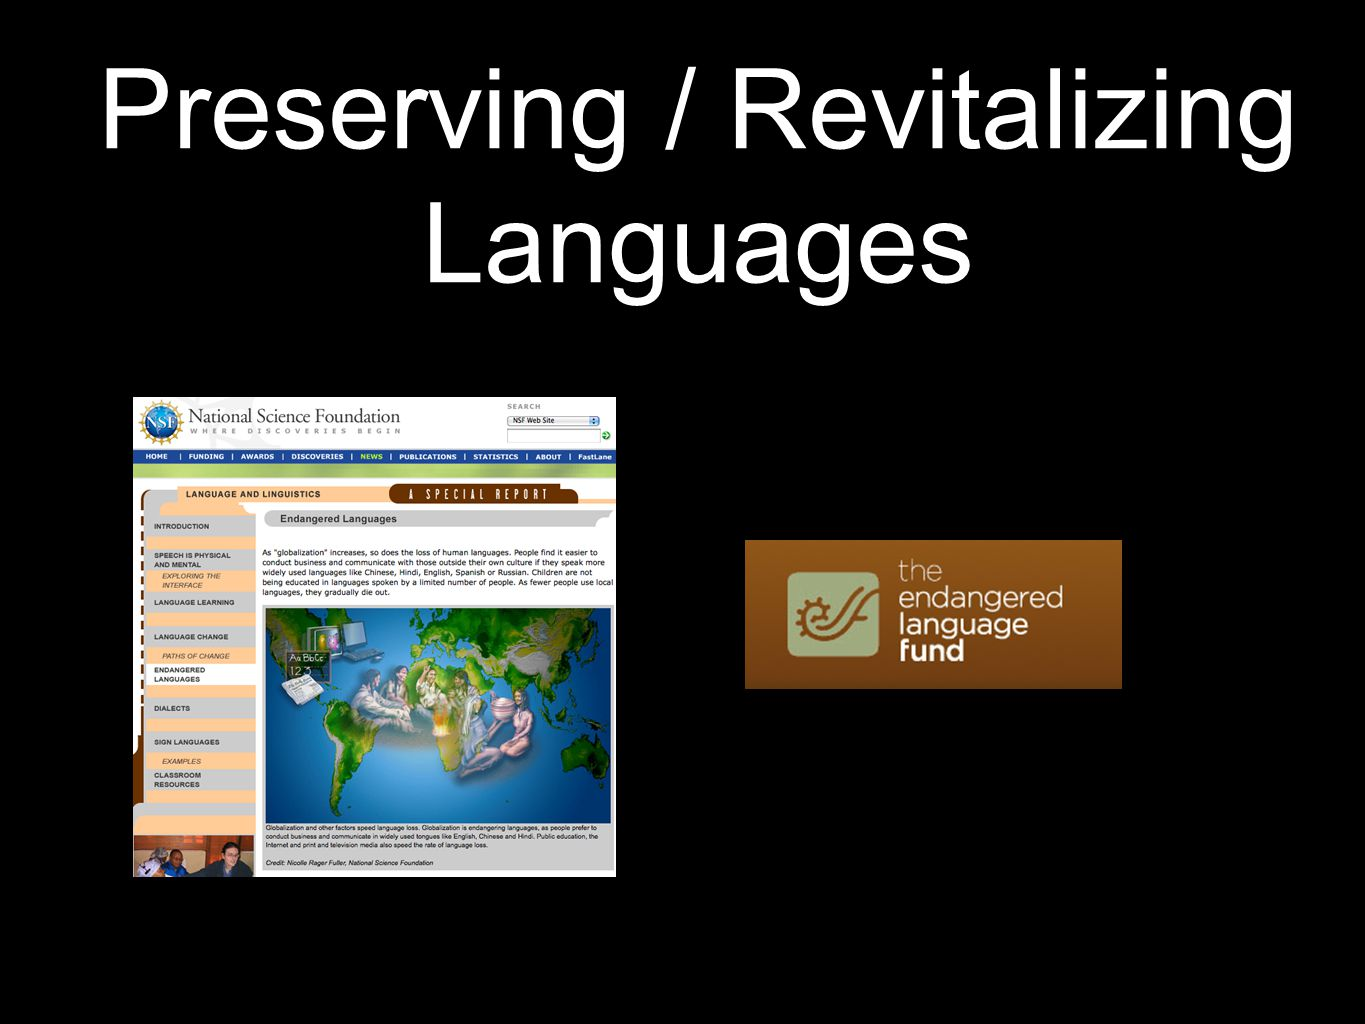 Resurrecting Languages The New World (Terrence Malik, New Line Cinema 2005) Linguist Blair Rudes (1951-2008) consulted (cf.